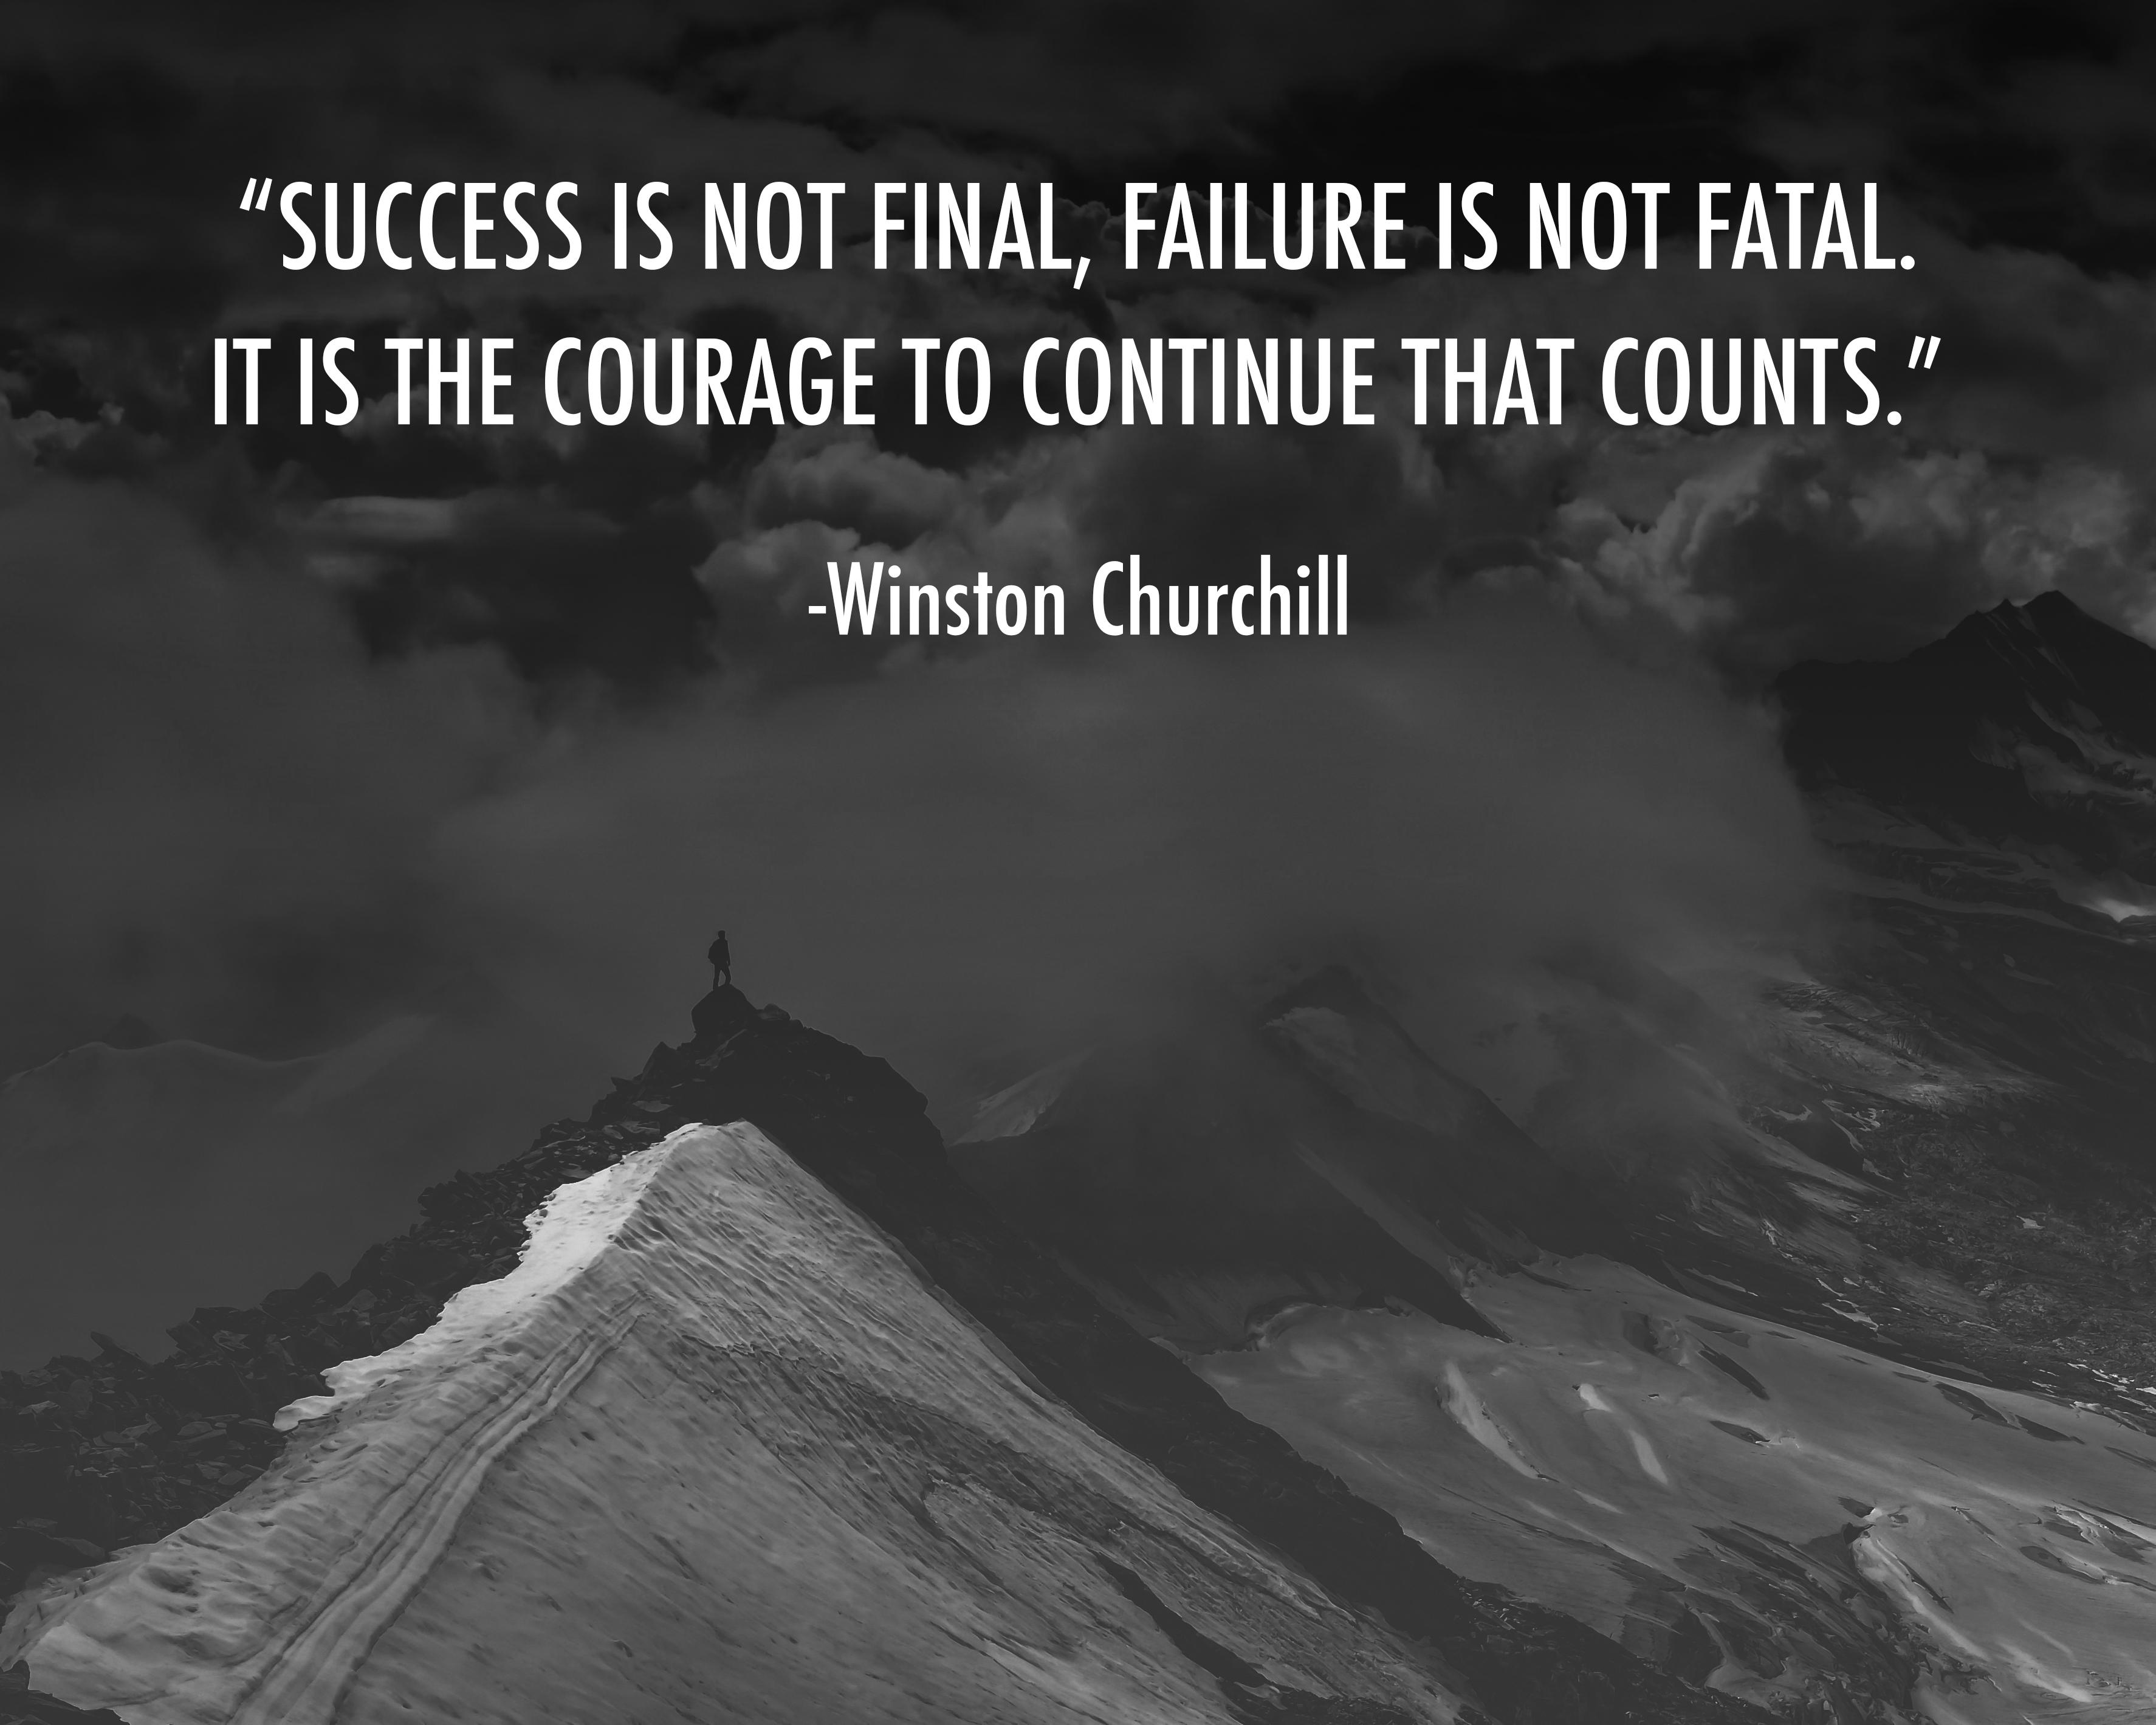 [Image] Don't let your previous failures keep you from your future success.